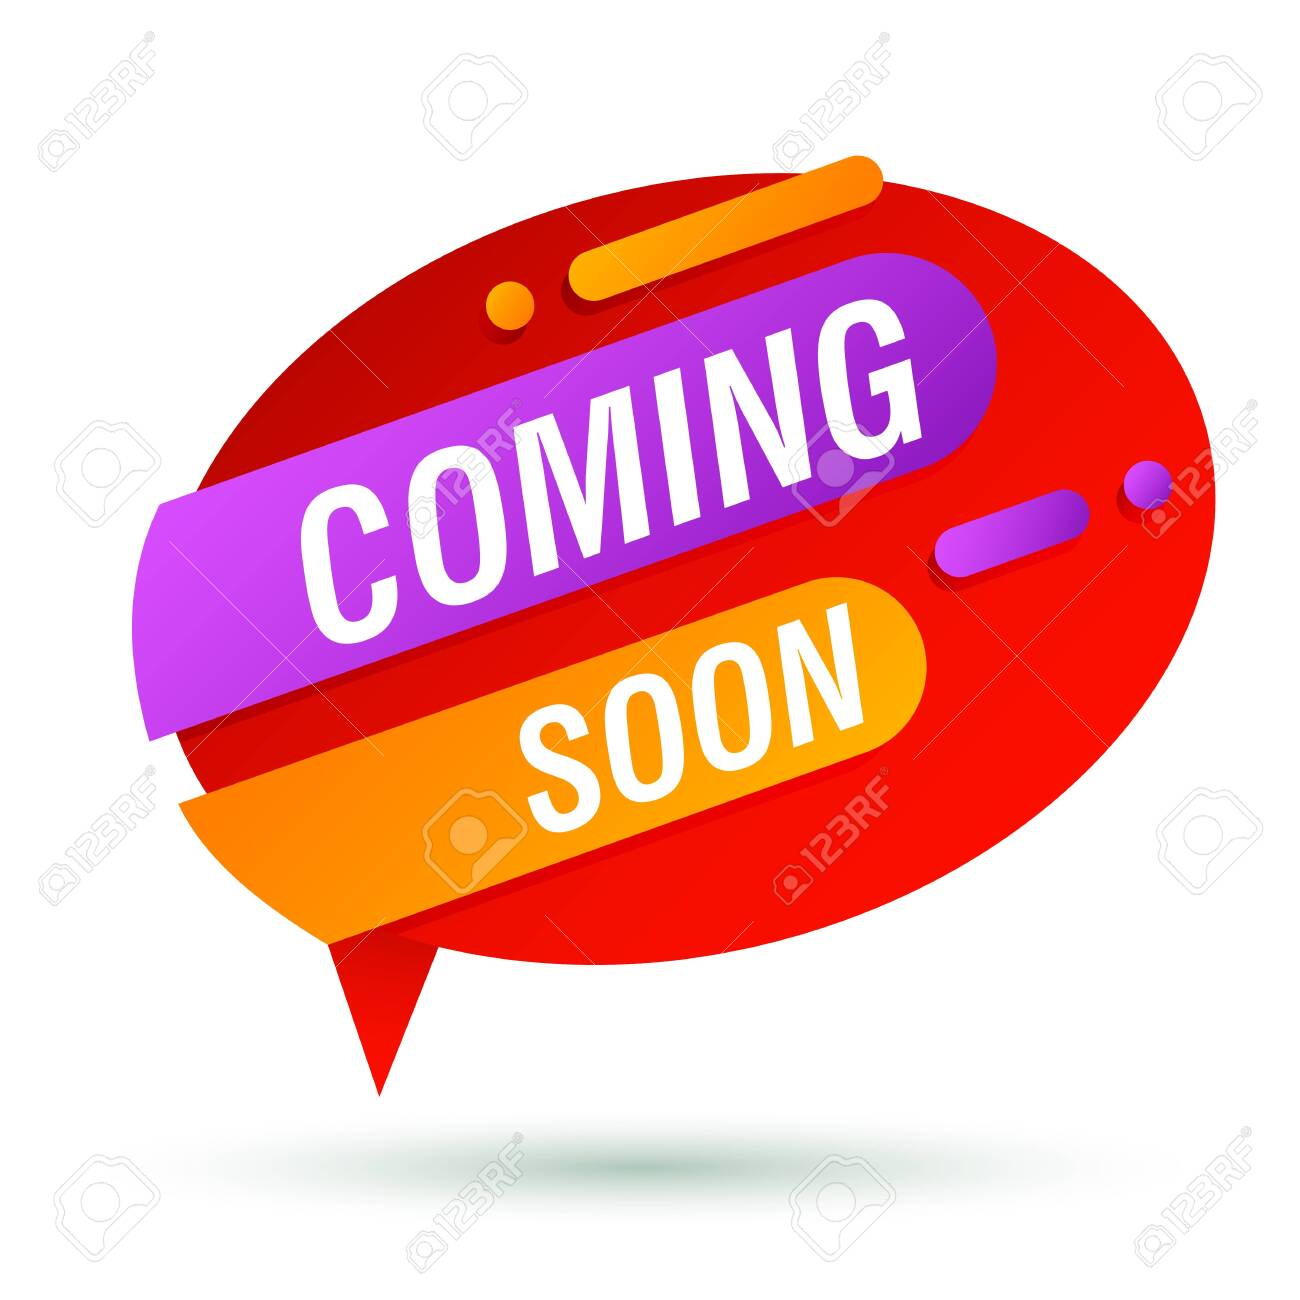 Coming Soon Red Banner Design Speech Bubble Oval Shape Vector Royalty Free Cliparts Vectors And Stock Illustration Image 137477632